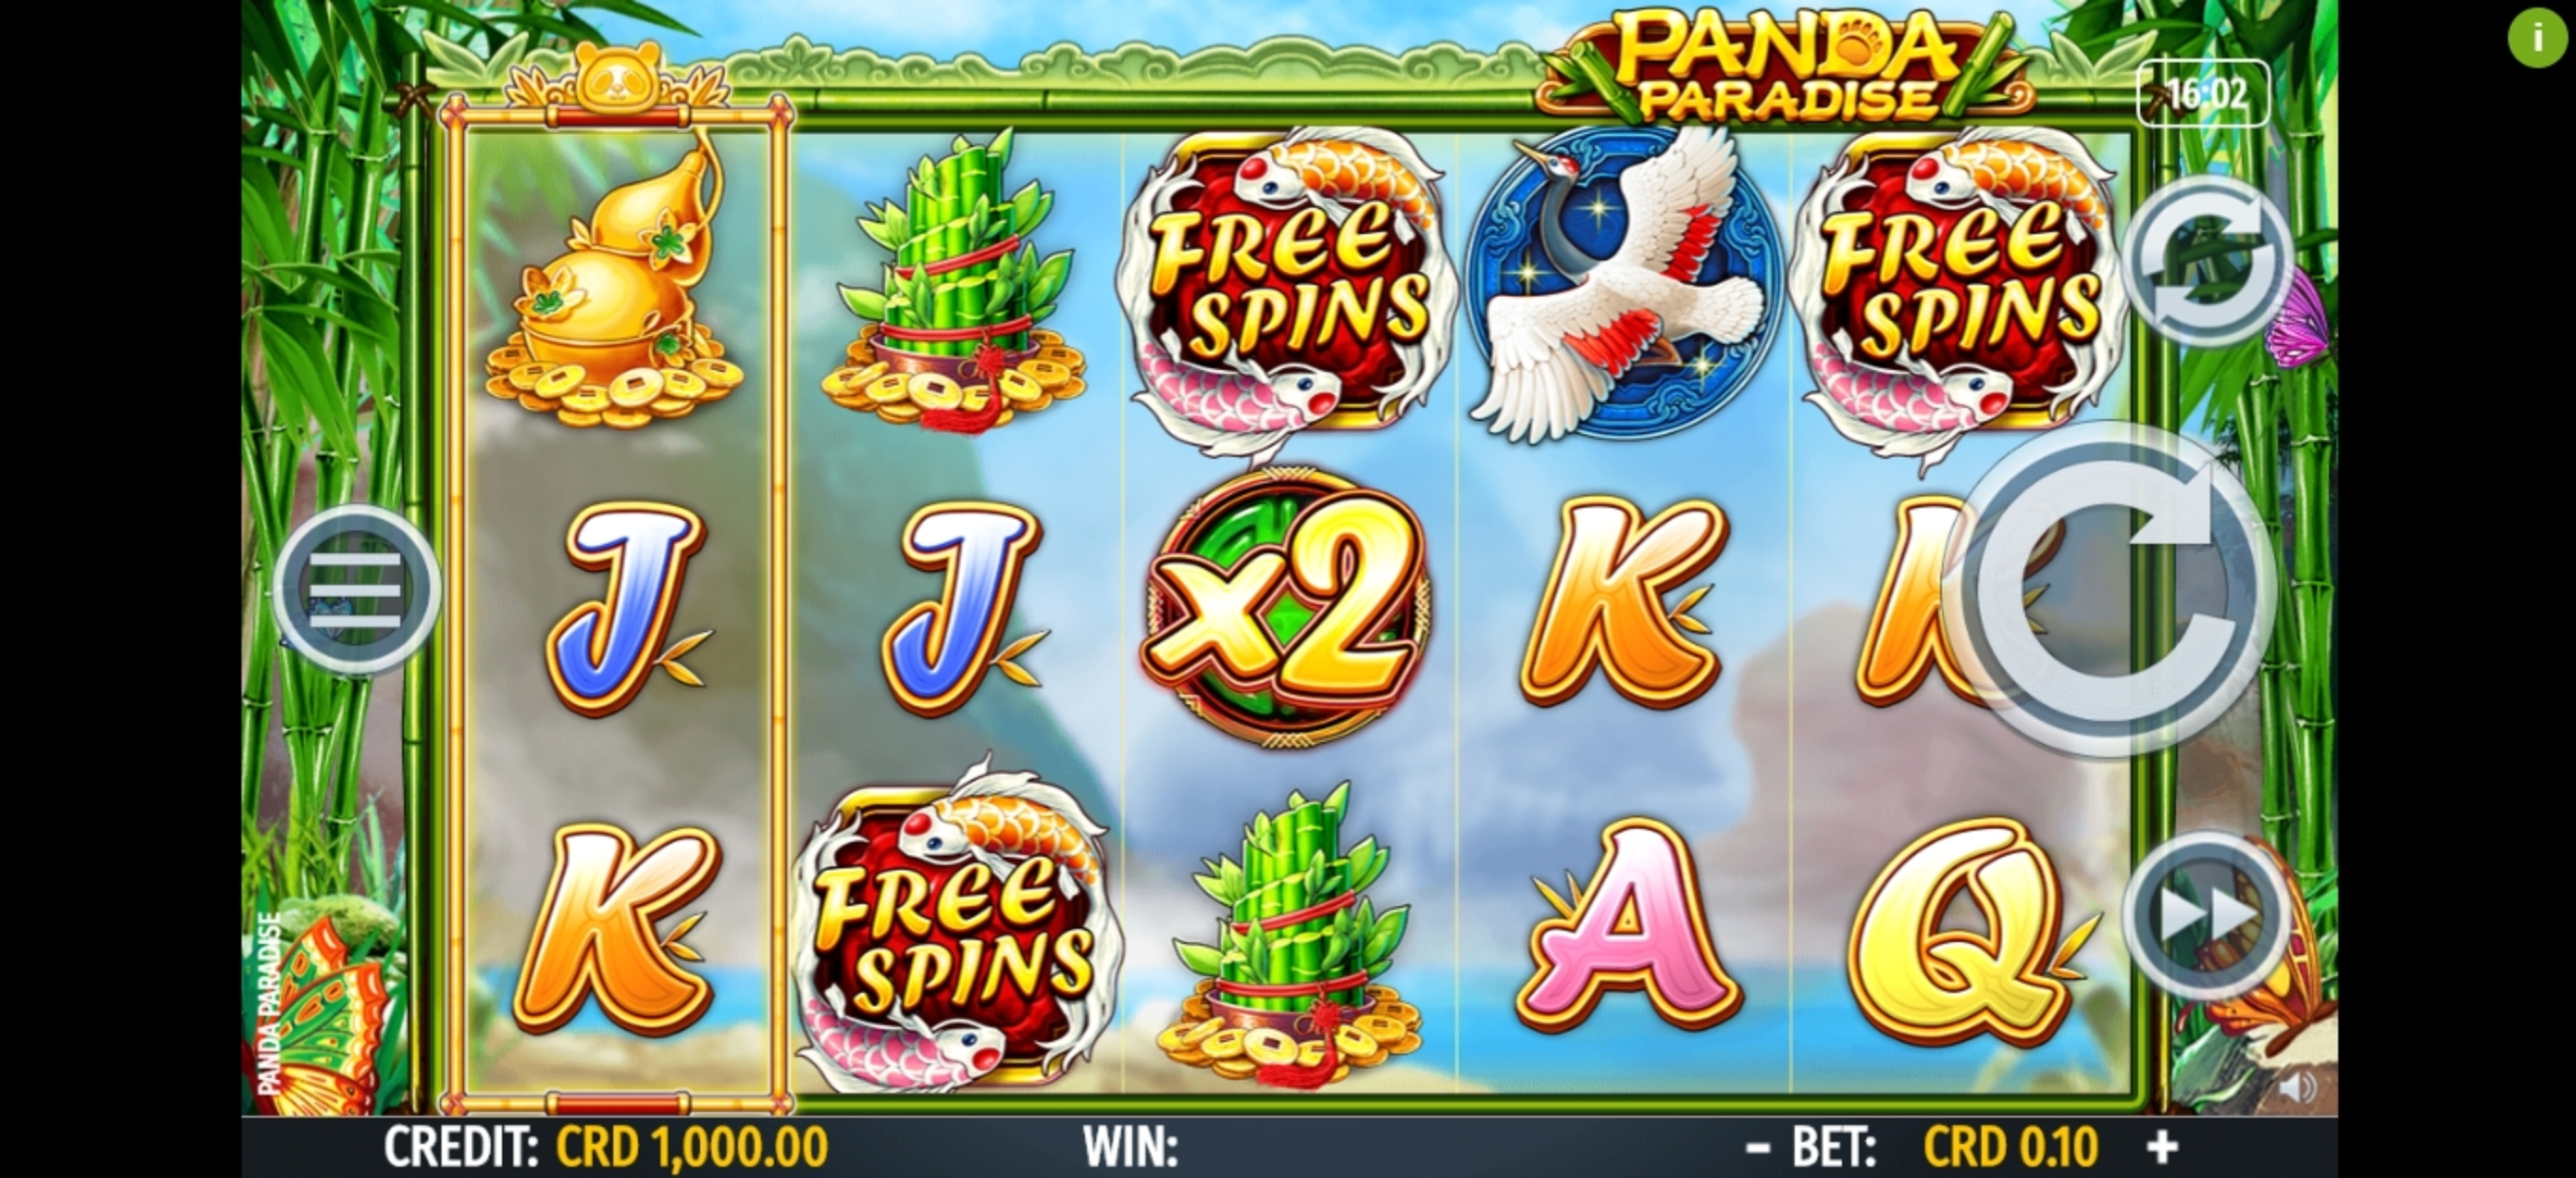 Reels in Panda Paradise Slot Game by Octavian Gaming